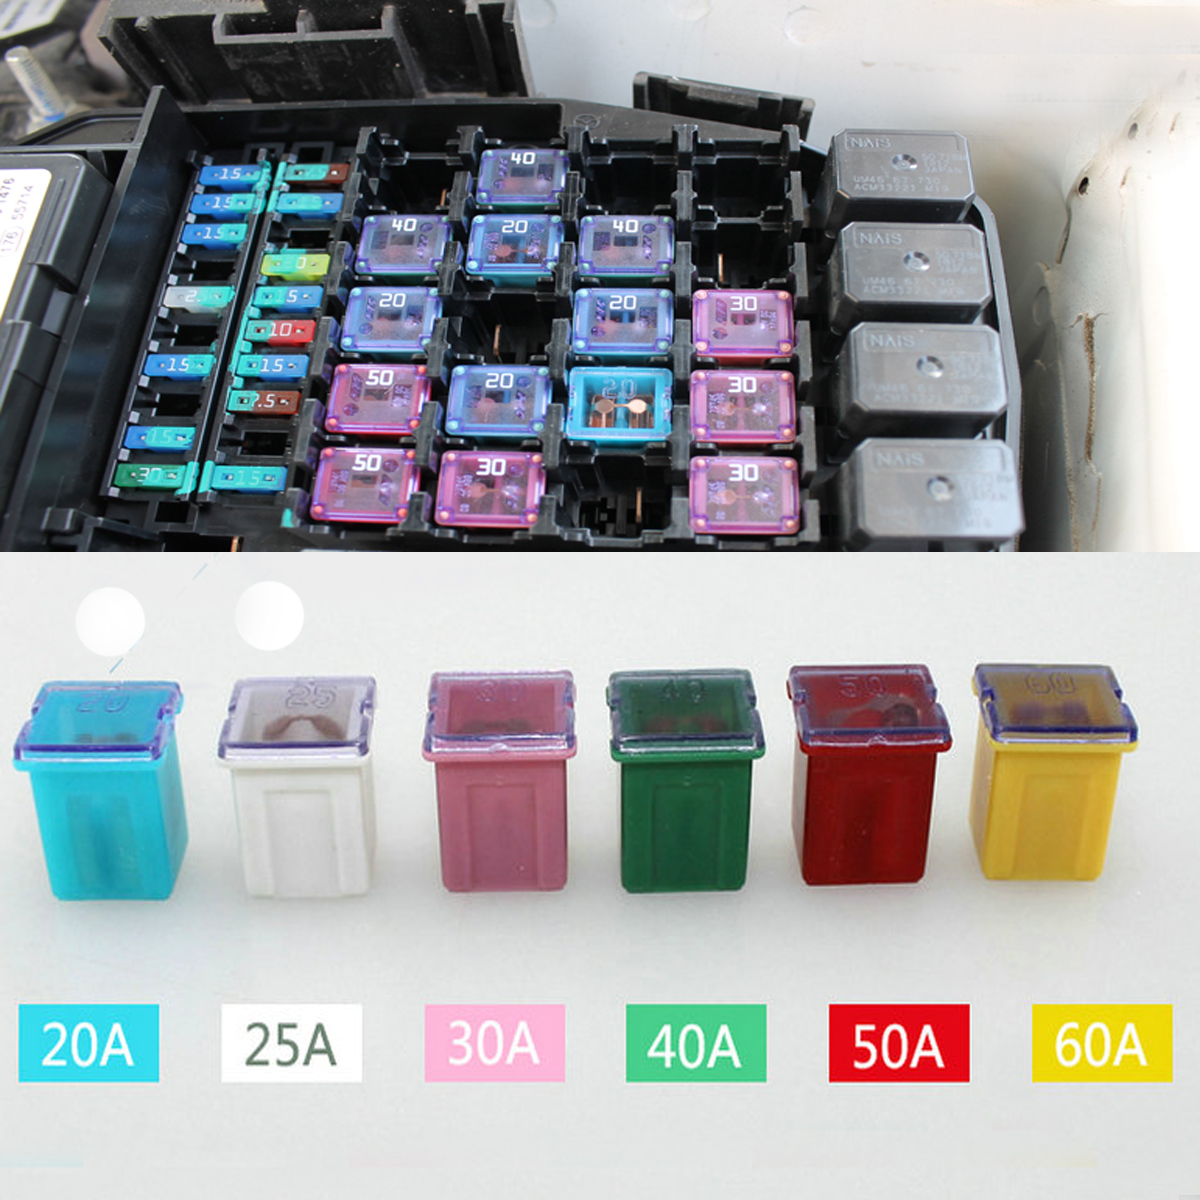 packing included 60 pcs fuse 10 x 60a yellow fuse 10 x 50a red fuse 10 x 40a green fuse 10 x 30a pink fuse 10 x 25a white fuse 10 x 20a blue fuse [ 1200 x 1200 Pixel ]